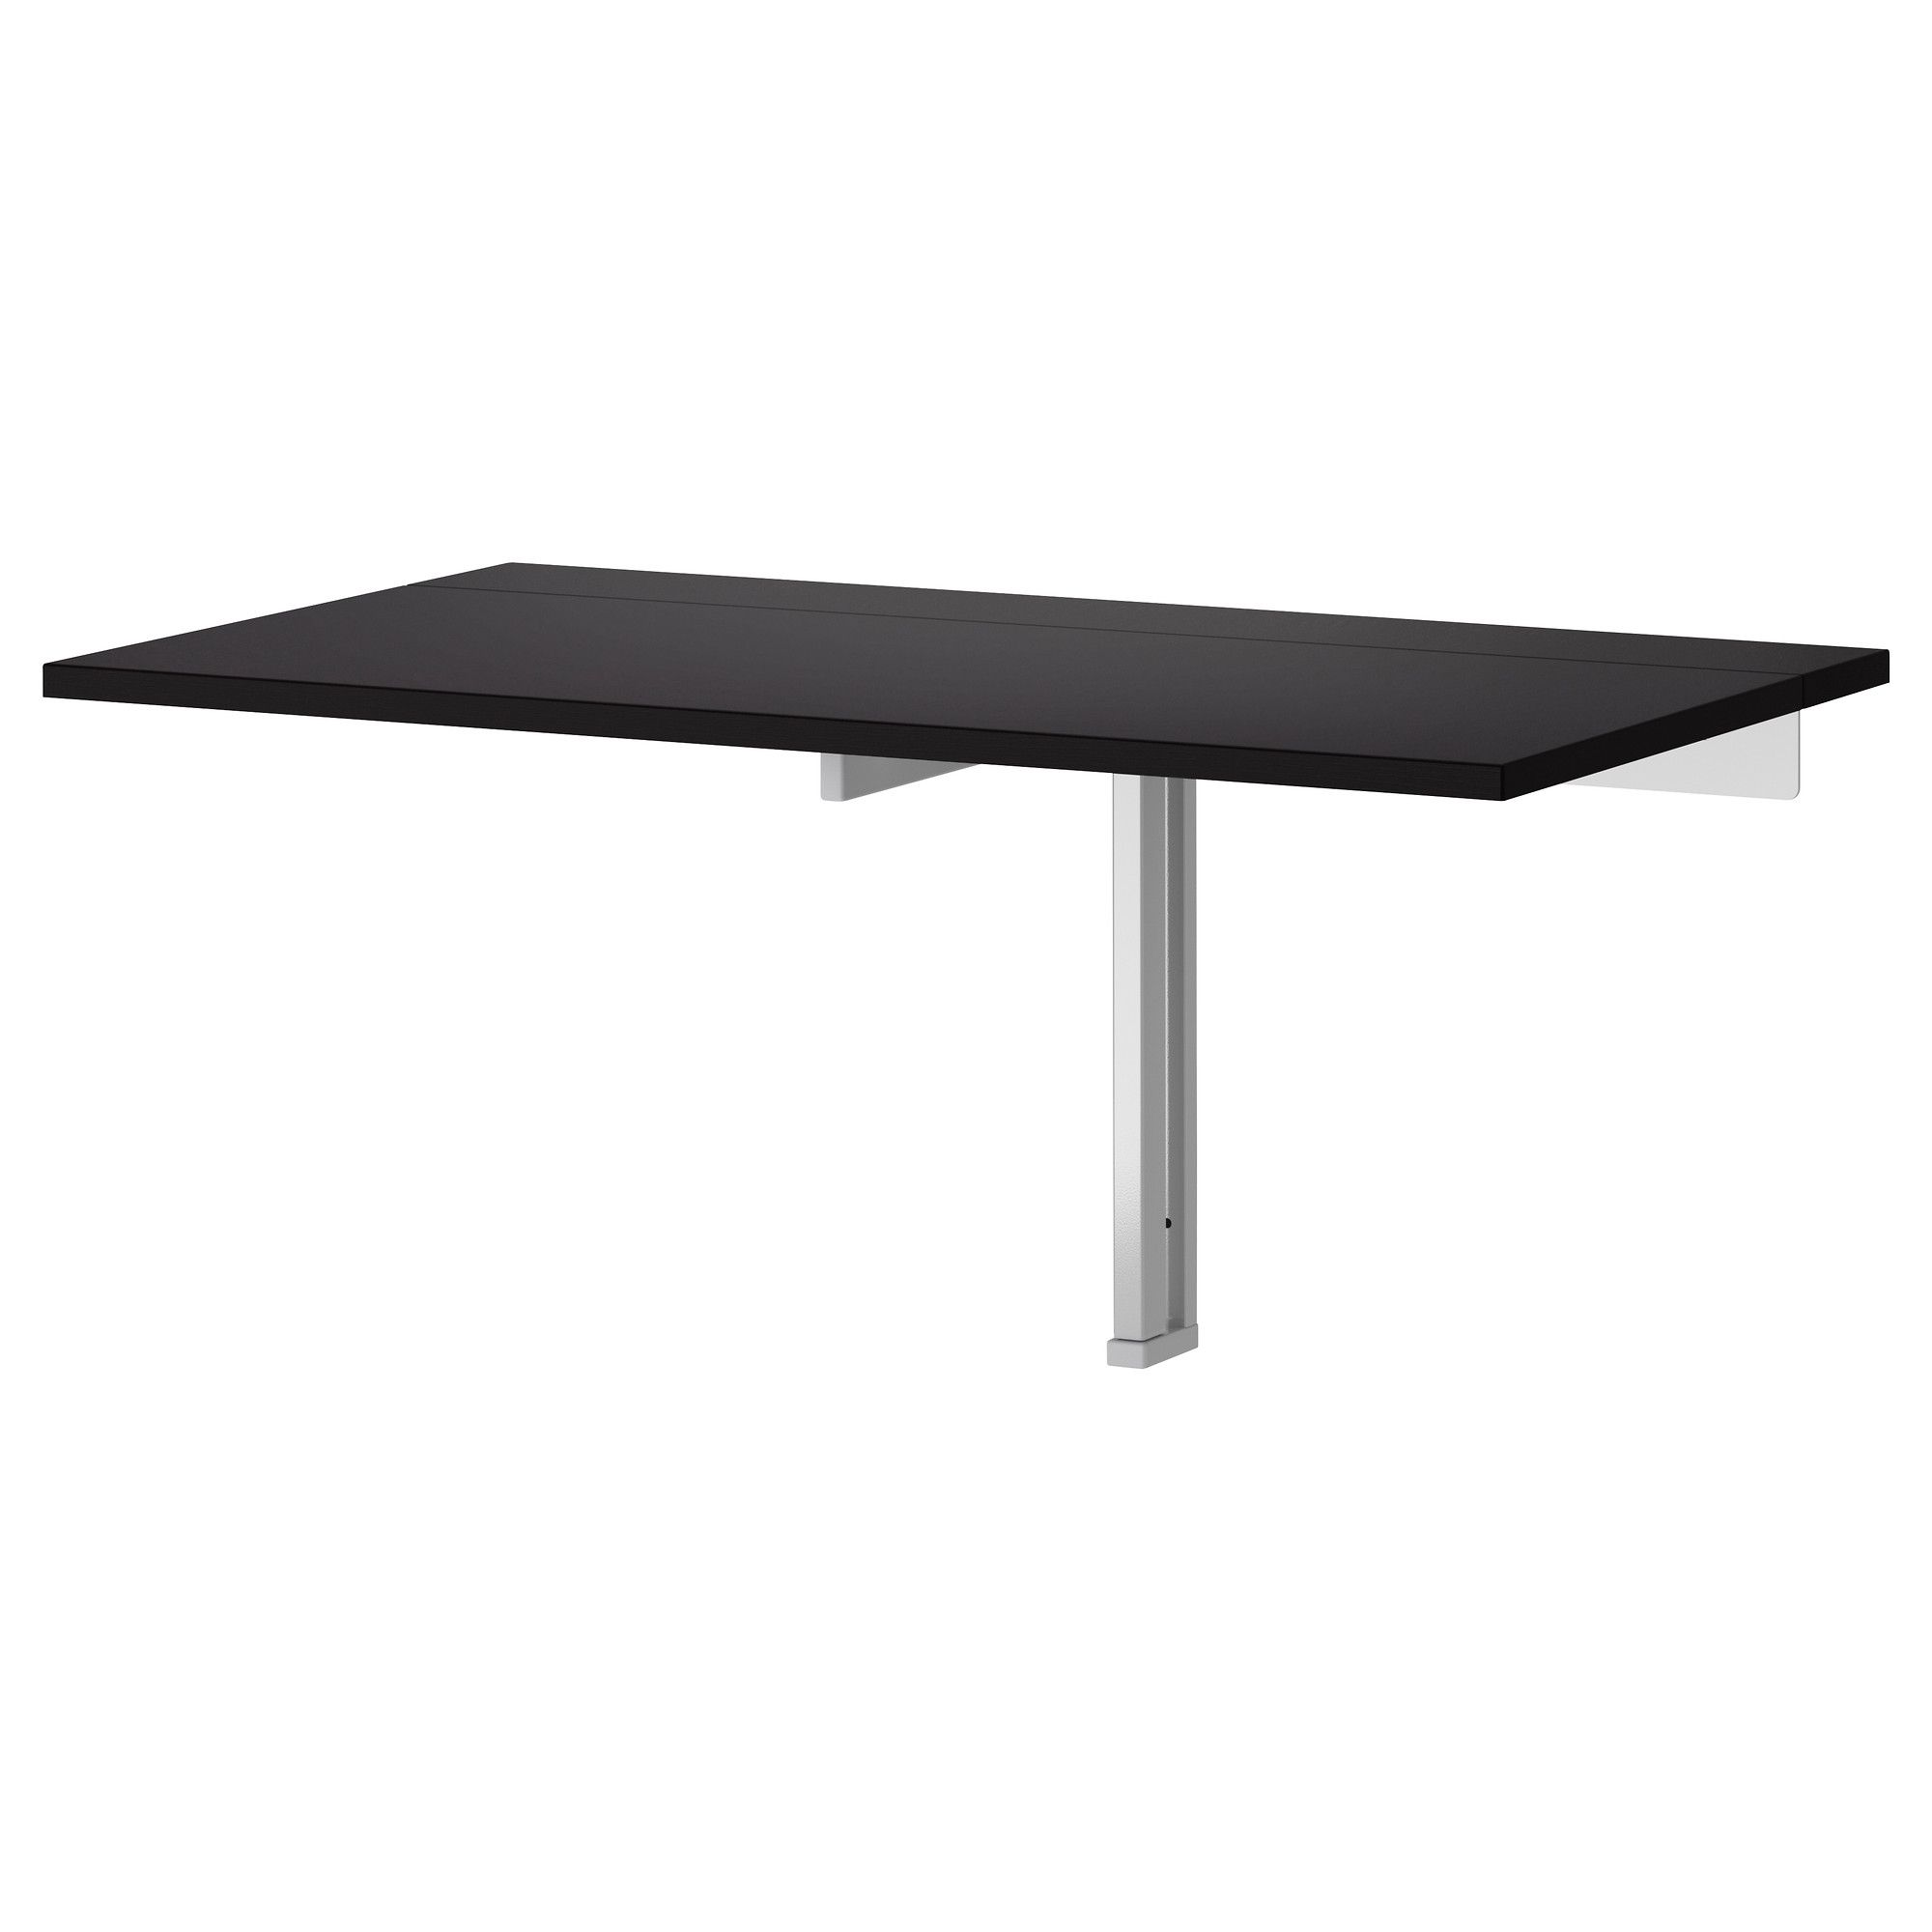 WALL MOUNTED FOLD OUT TABLE FOR OUR SMALL KITCHEN WHEN WE WANT A SIT DOWN  DINNER OR HAVE GUESTS BJURSTA Wall Mounted Drop Leaf Table   Brown Black    IKEA